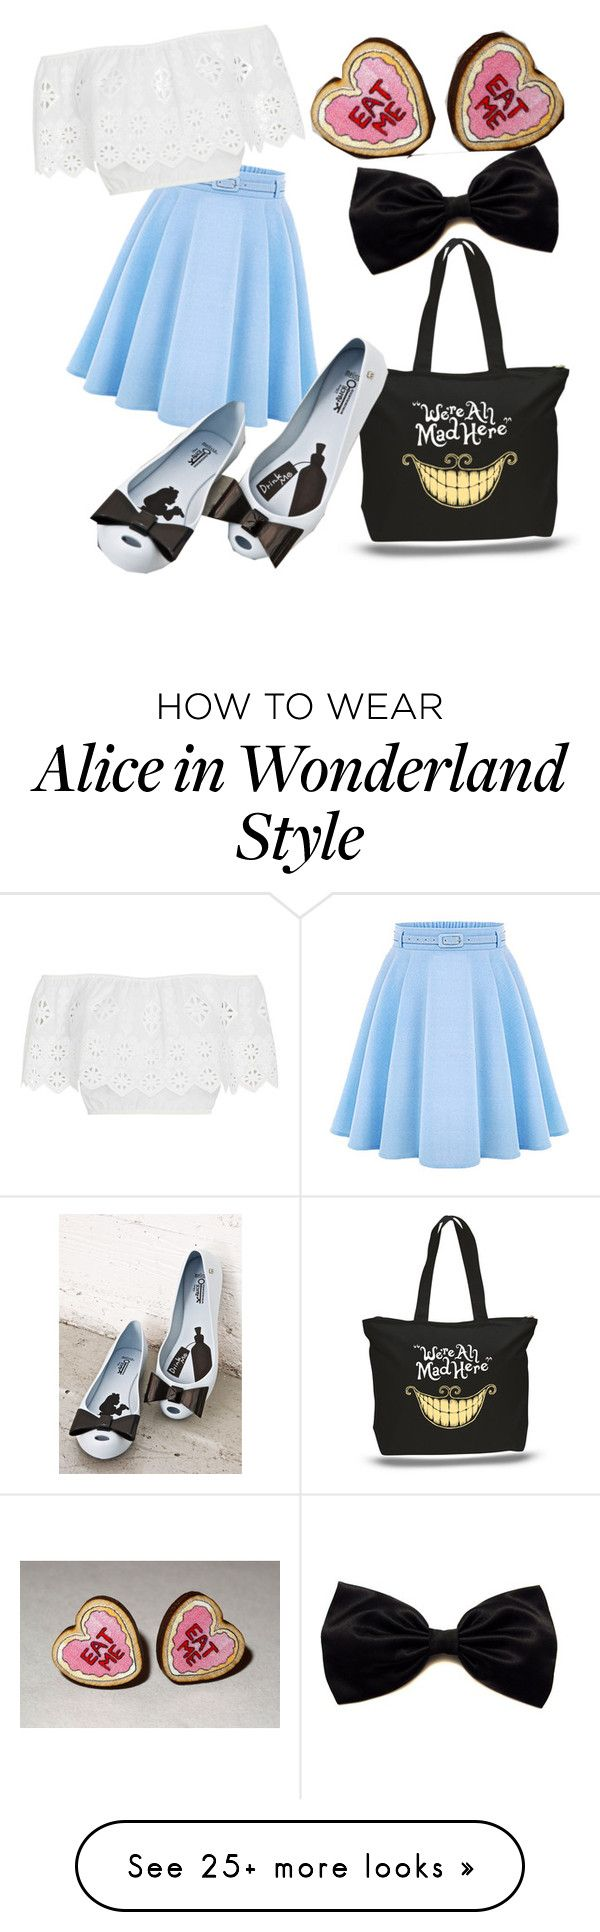 """Modern Alice (Alice in Wonderland)"" by haileydasilva on Polyvore featuring WithChic, Melissa, Miguelina and modern"